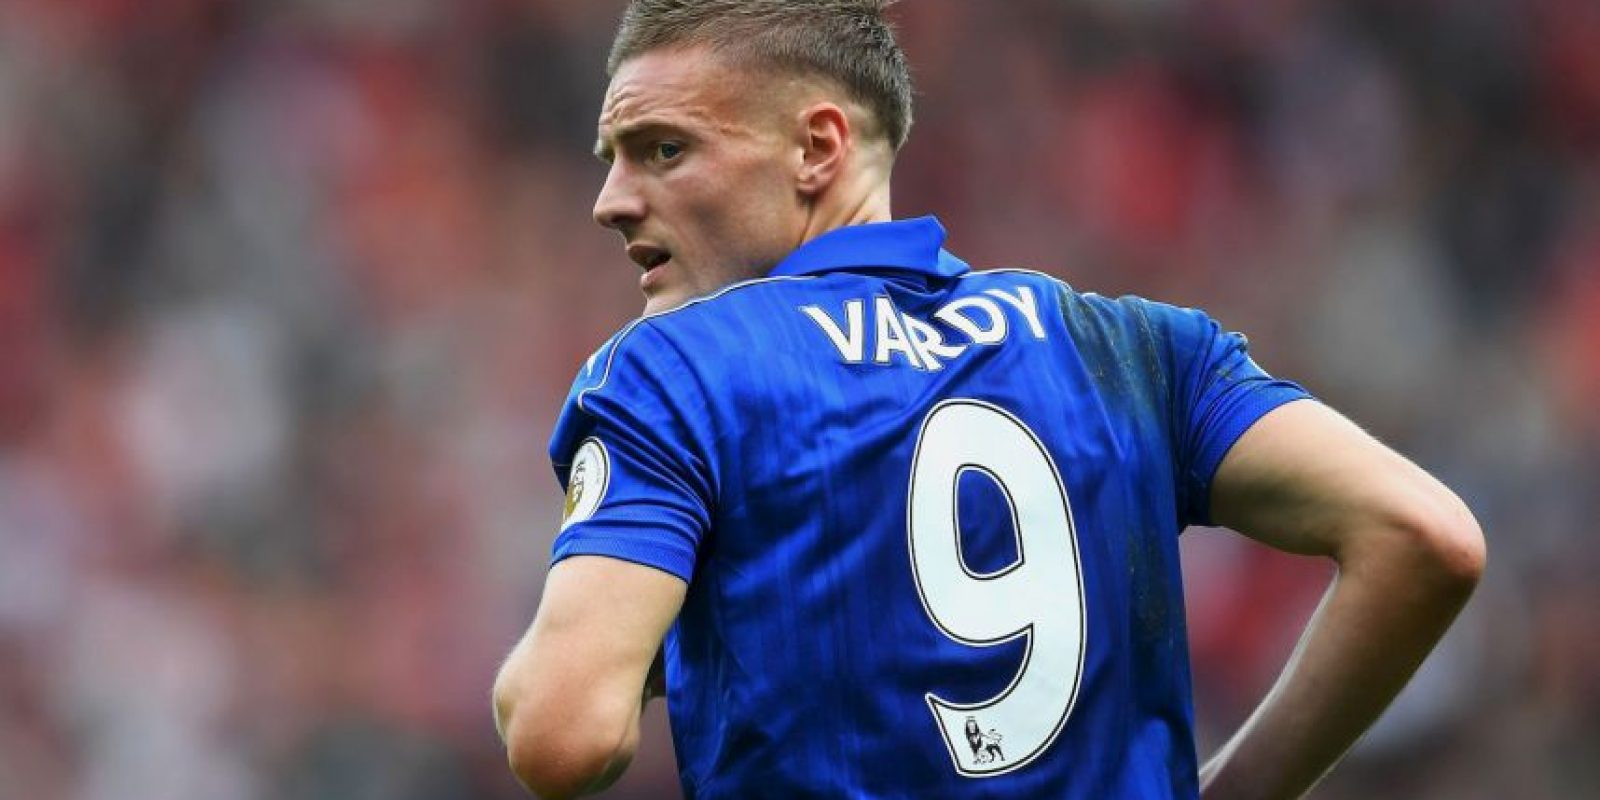 4.Jamie Vardy (Leicester) – 35.1 km/h Foto:Getty images